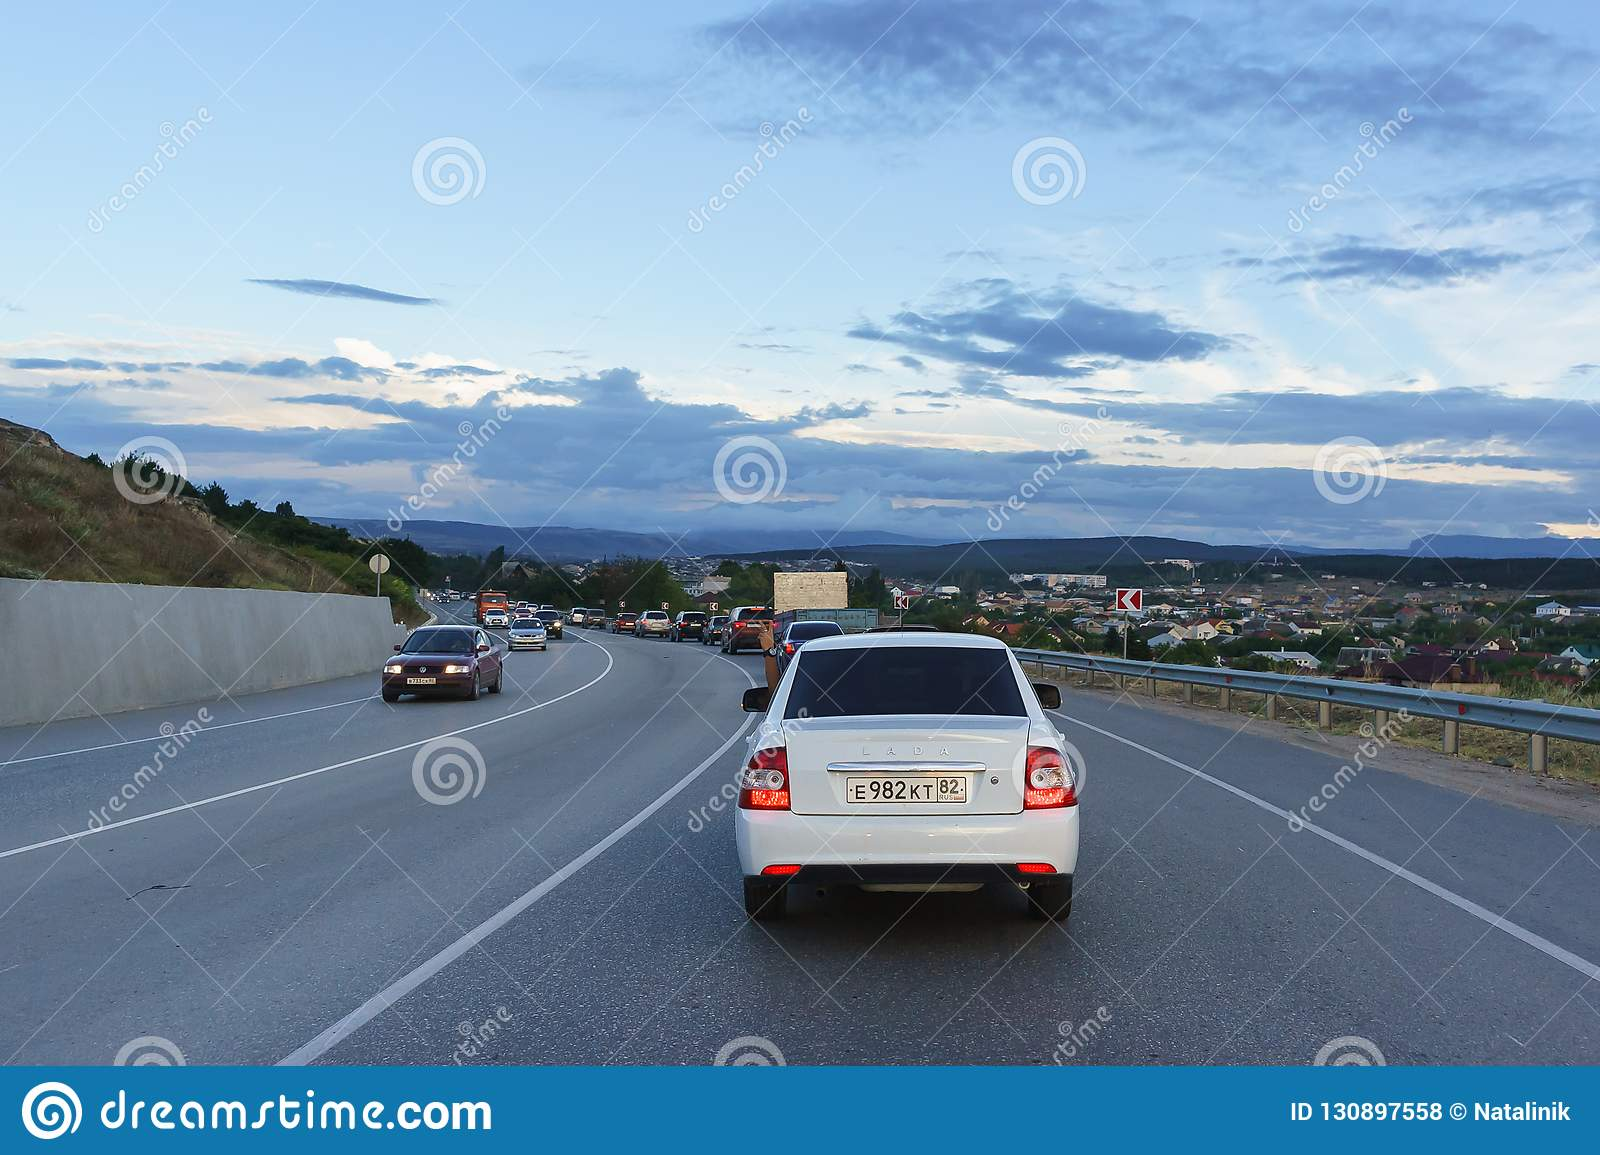 Traffic Jam In The Evening Rush Hour On The Bypass Road